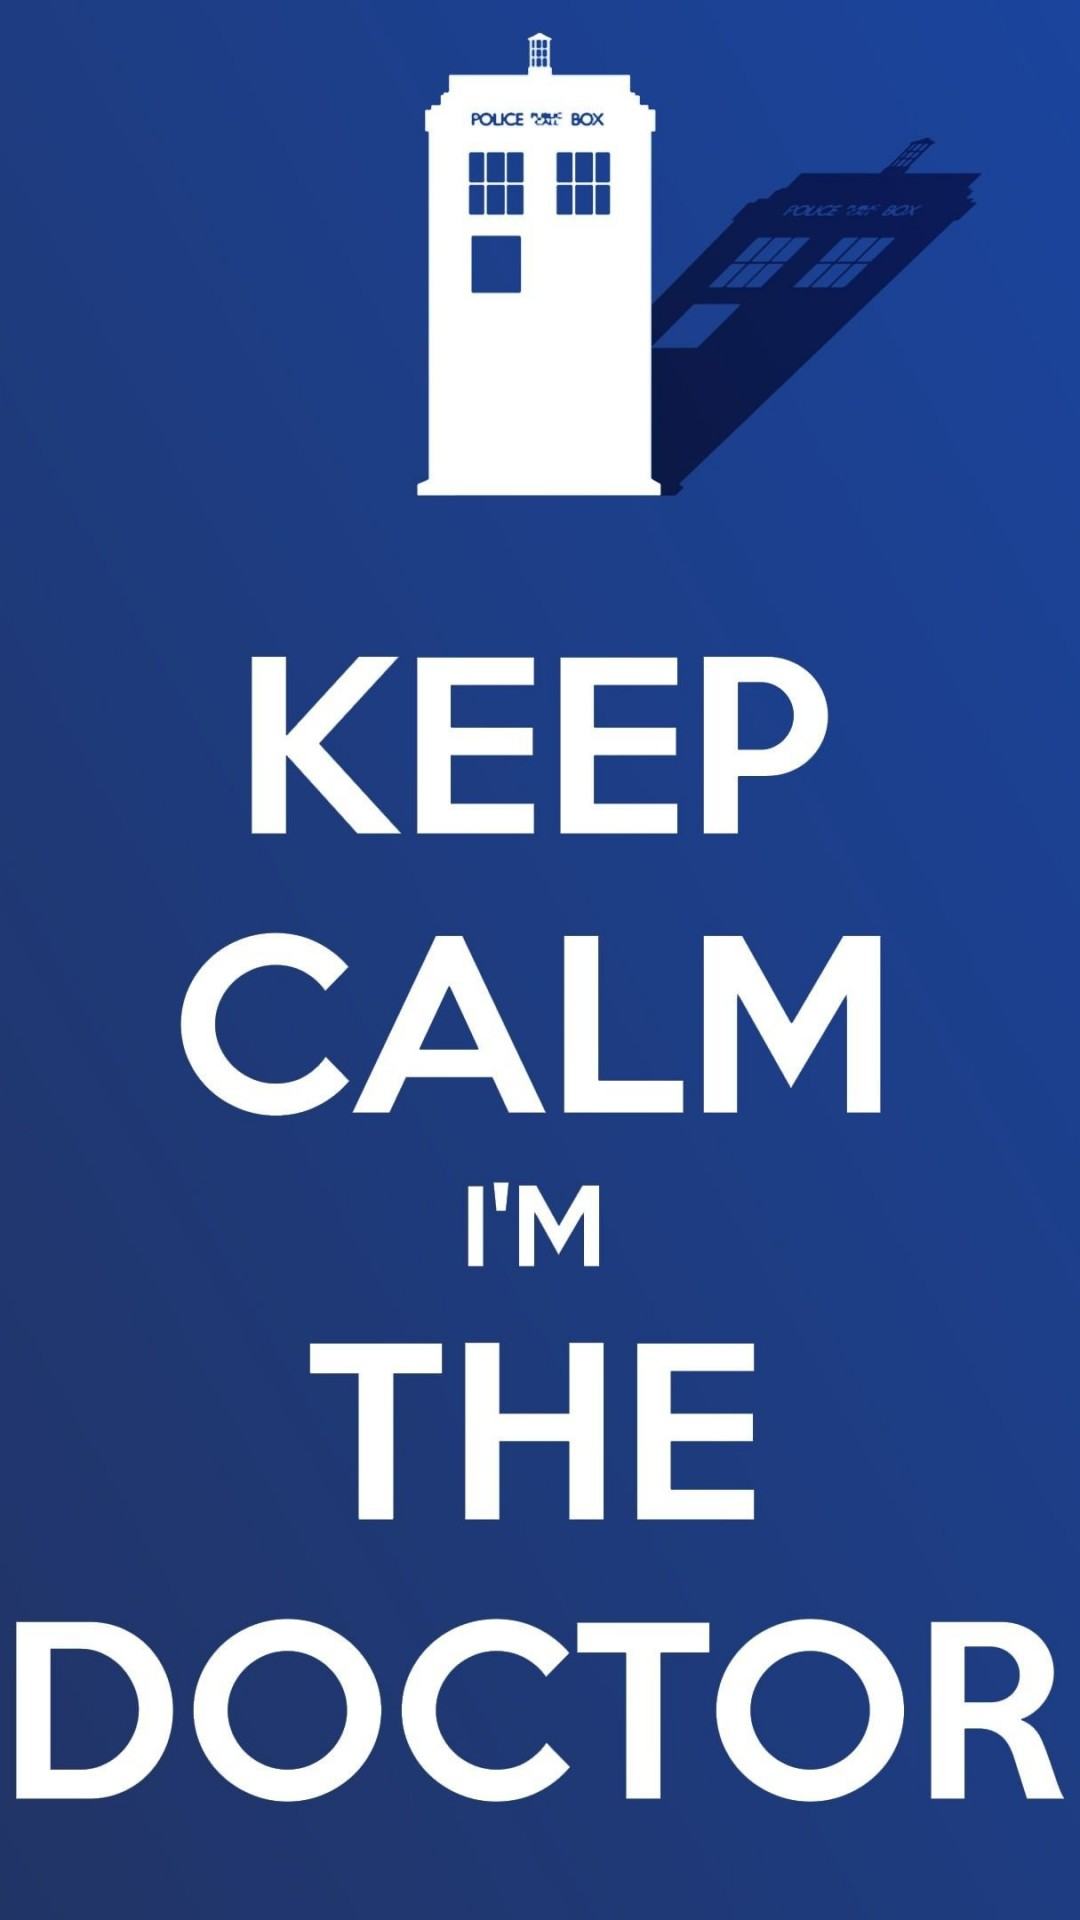 Keep Calm Im The Doctor Wallpaper for SONY Xperia Z2